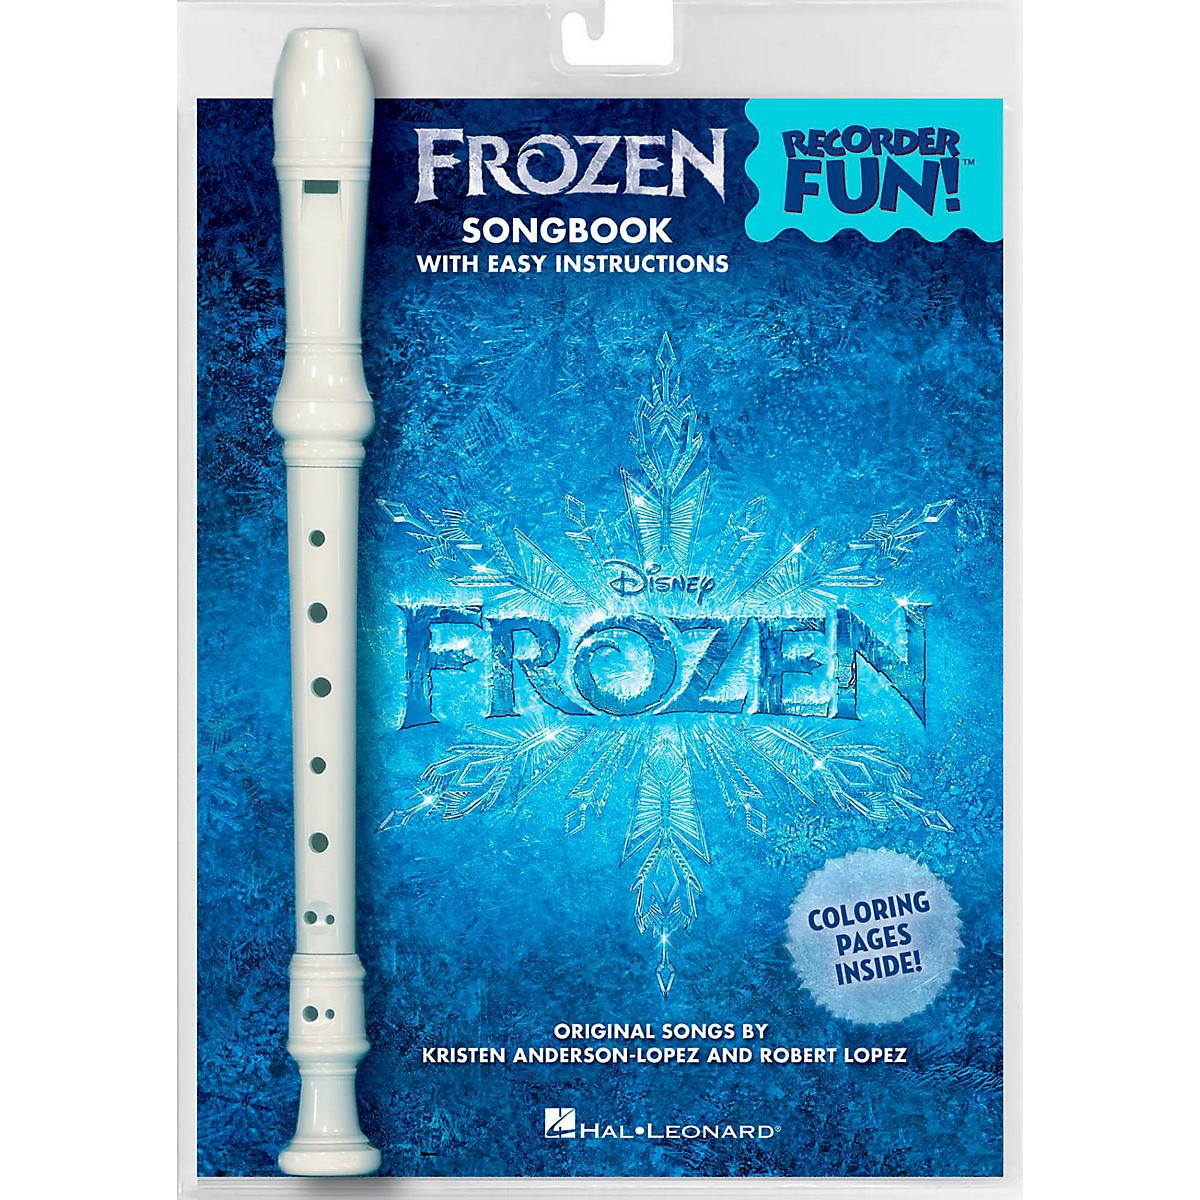 Hal Leonard Frozen - Recorder Fun! Pack with Songbook and Instrument